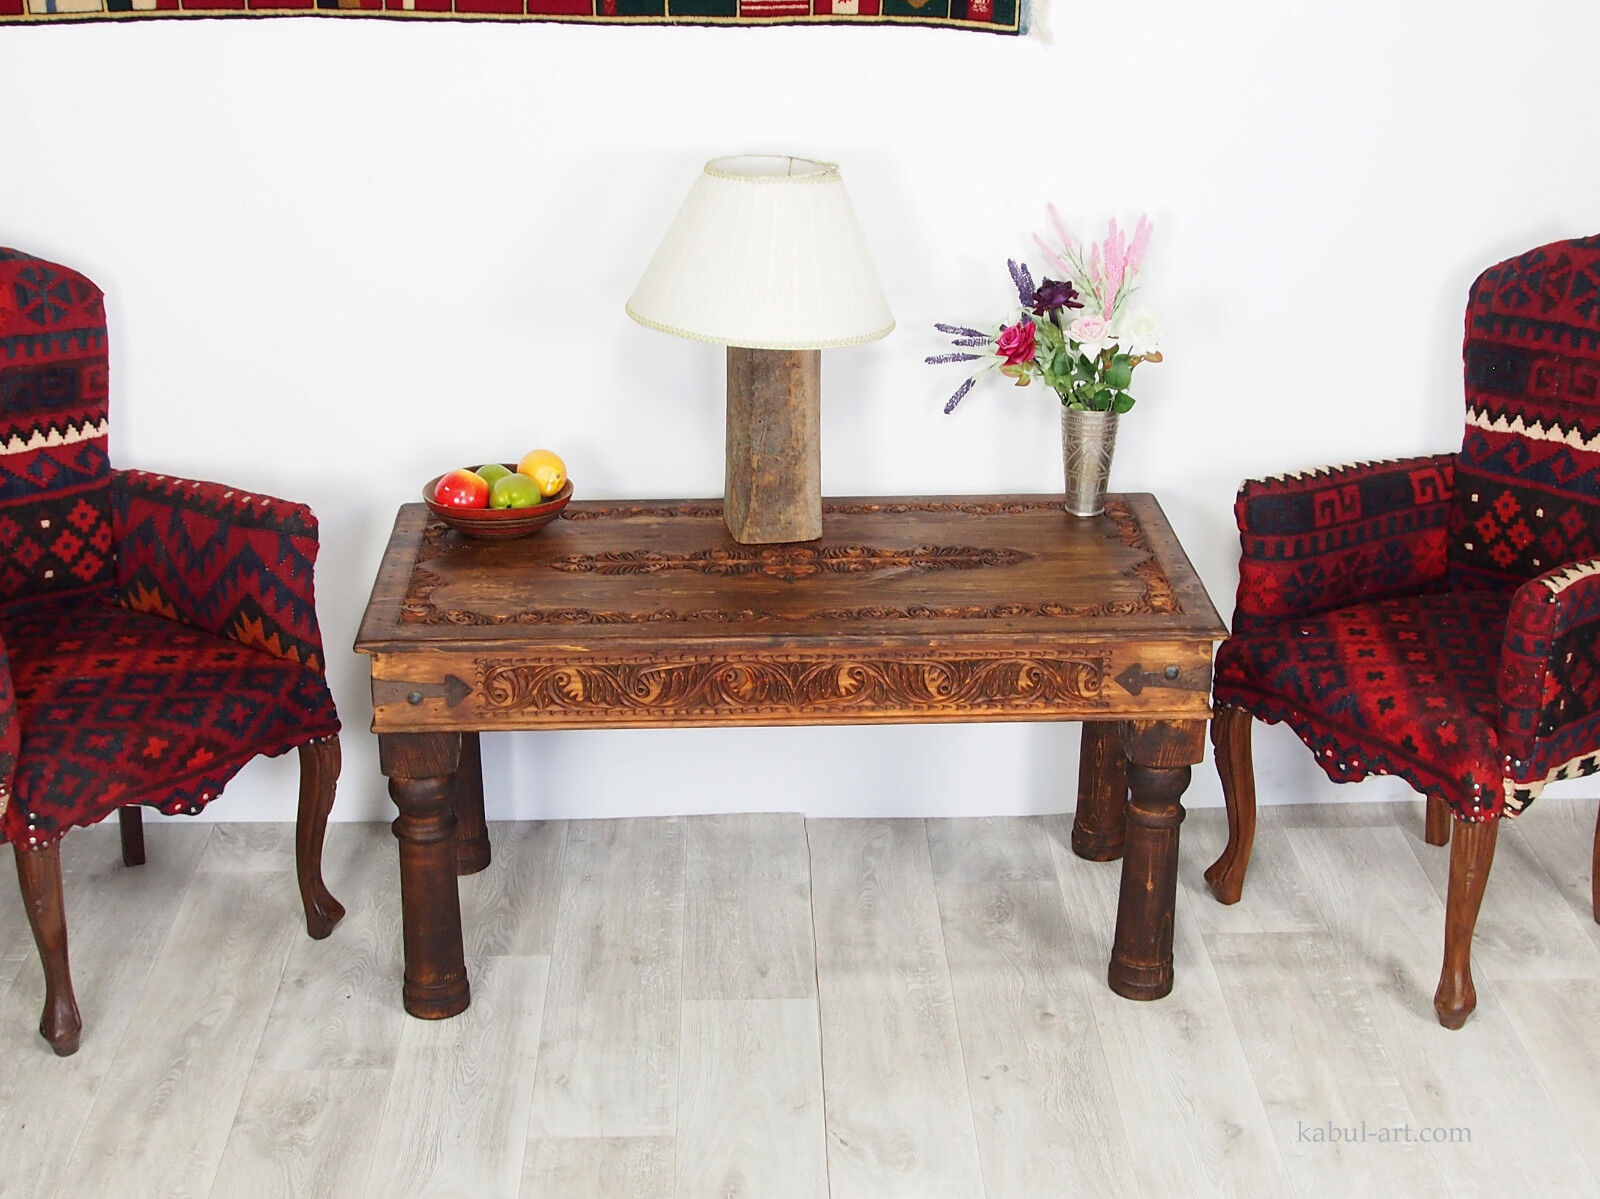 Table Basse Console 120x60 Cm Table D Appoint Orient Thé Table Table Basse Console